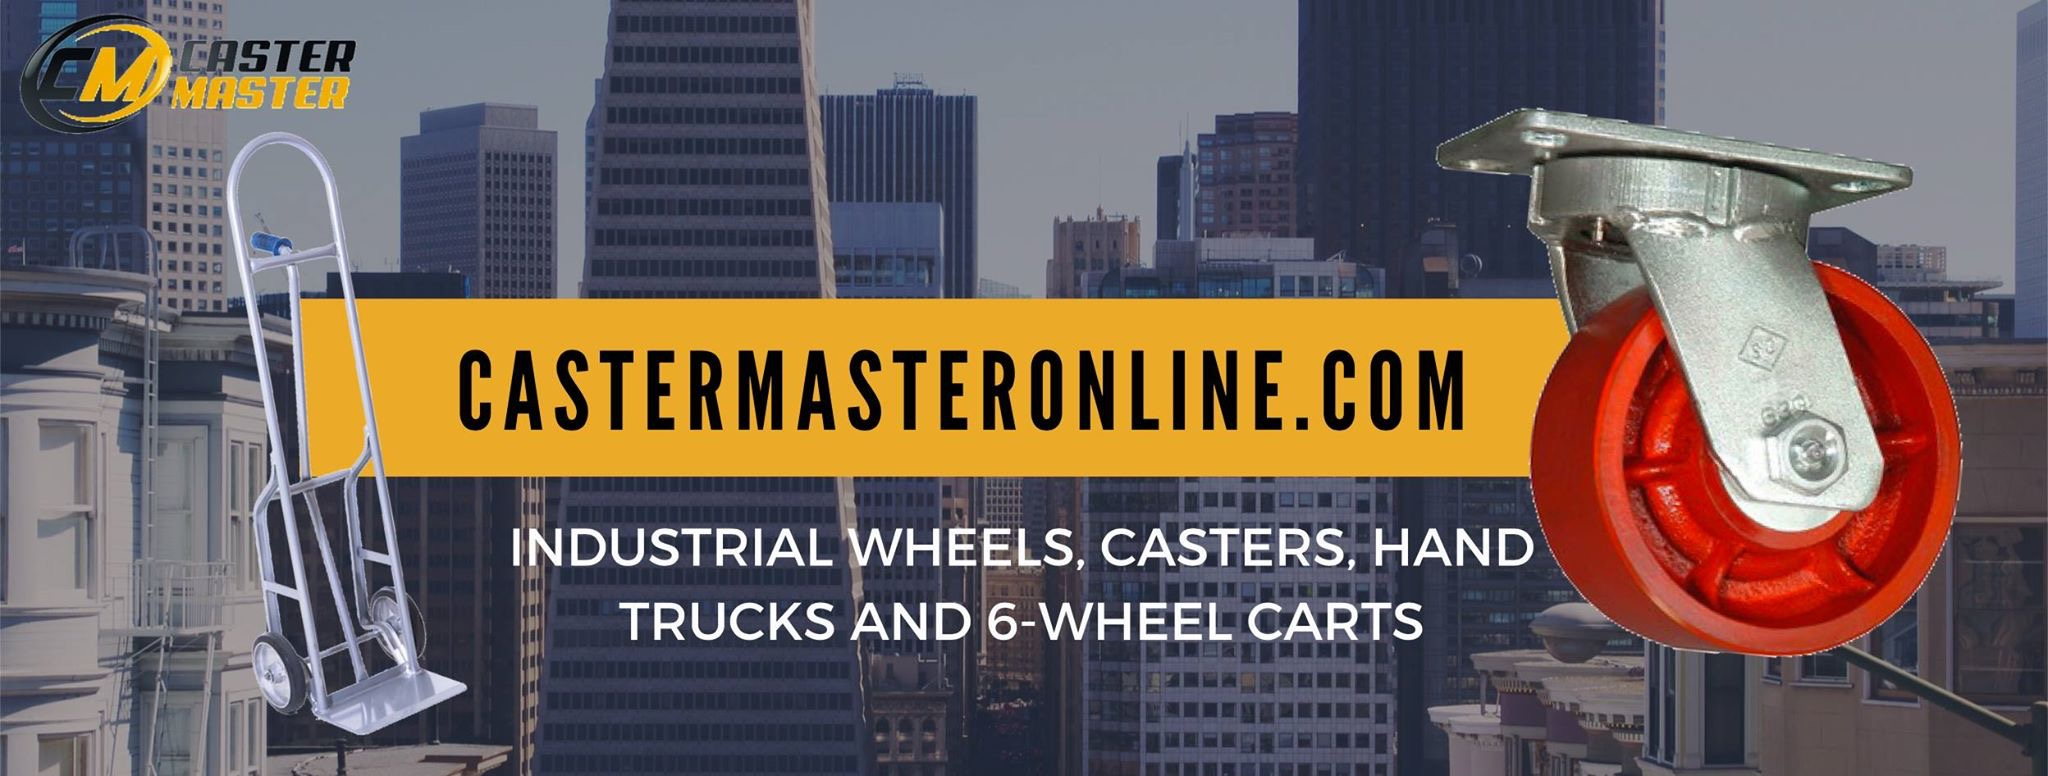 Caster Master Online - Industrial Wheels, Casters, Hand Trucks, and 6-Wheel Carts